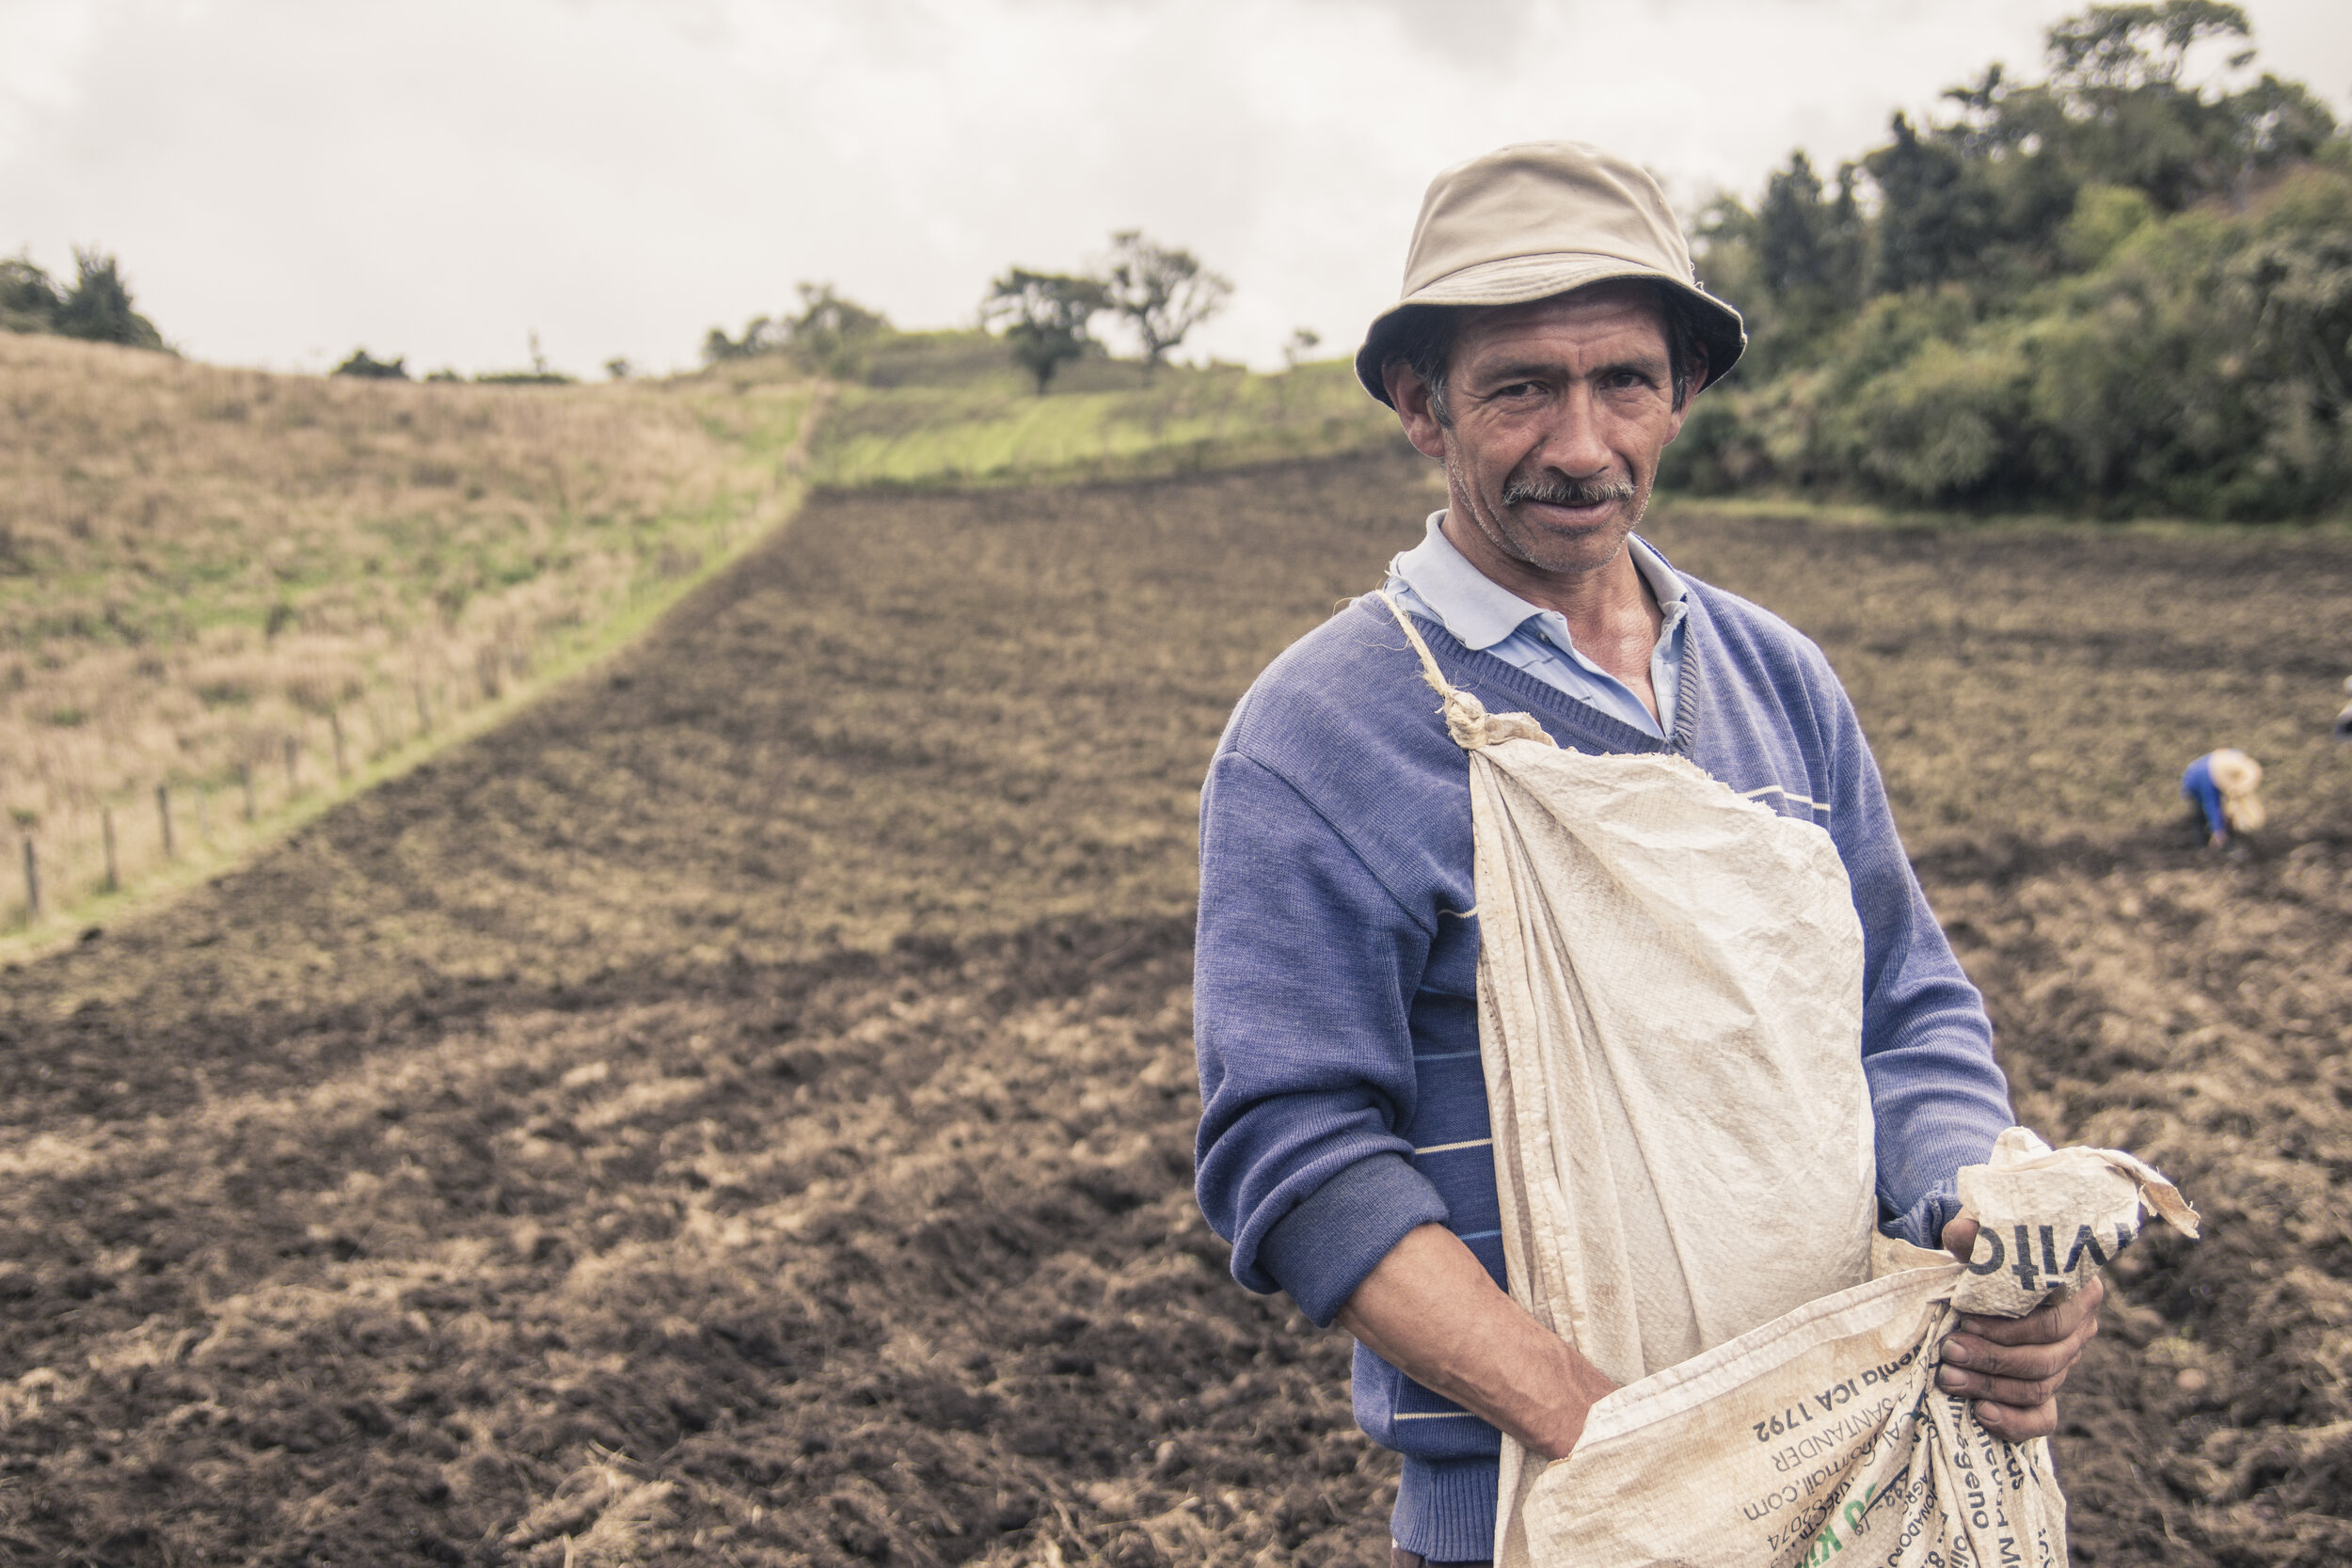 YSB Portfolio: Campo Vivo. A social business improving the livelihoods of local farmers and their families living in low socioeconomic communities in rural Colombia